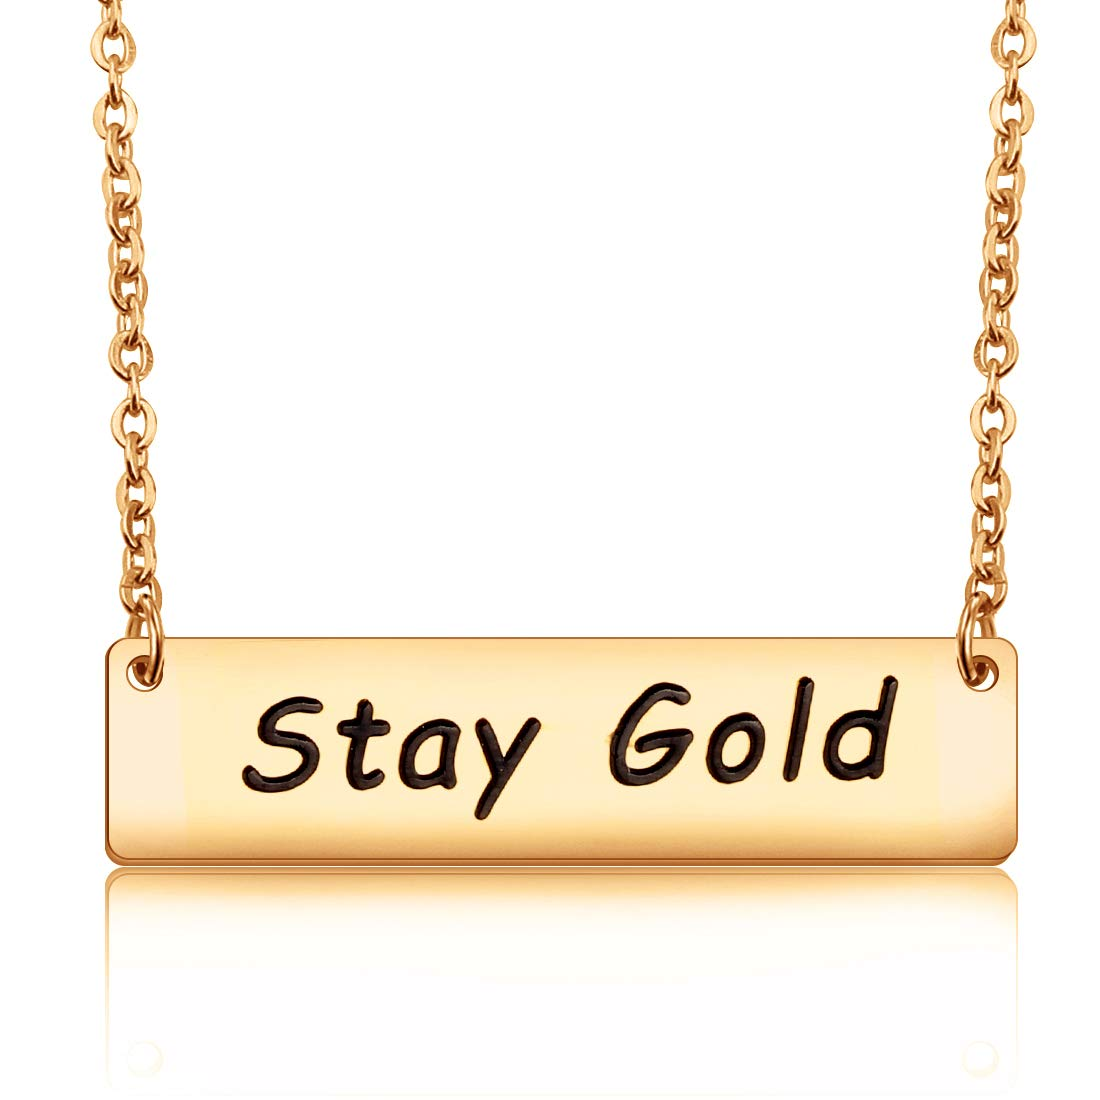 Buy Tiimg Stay Gold Stay Gold At Amazon In In step brother she say t. amazon in